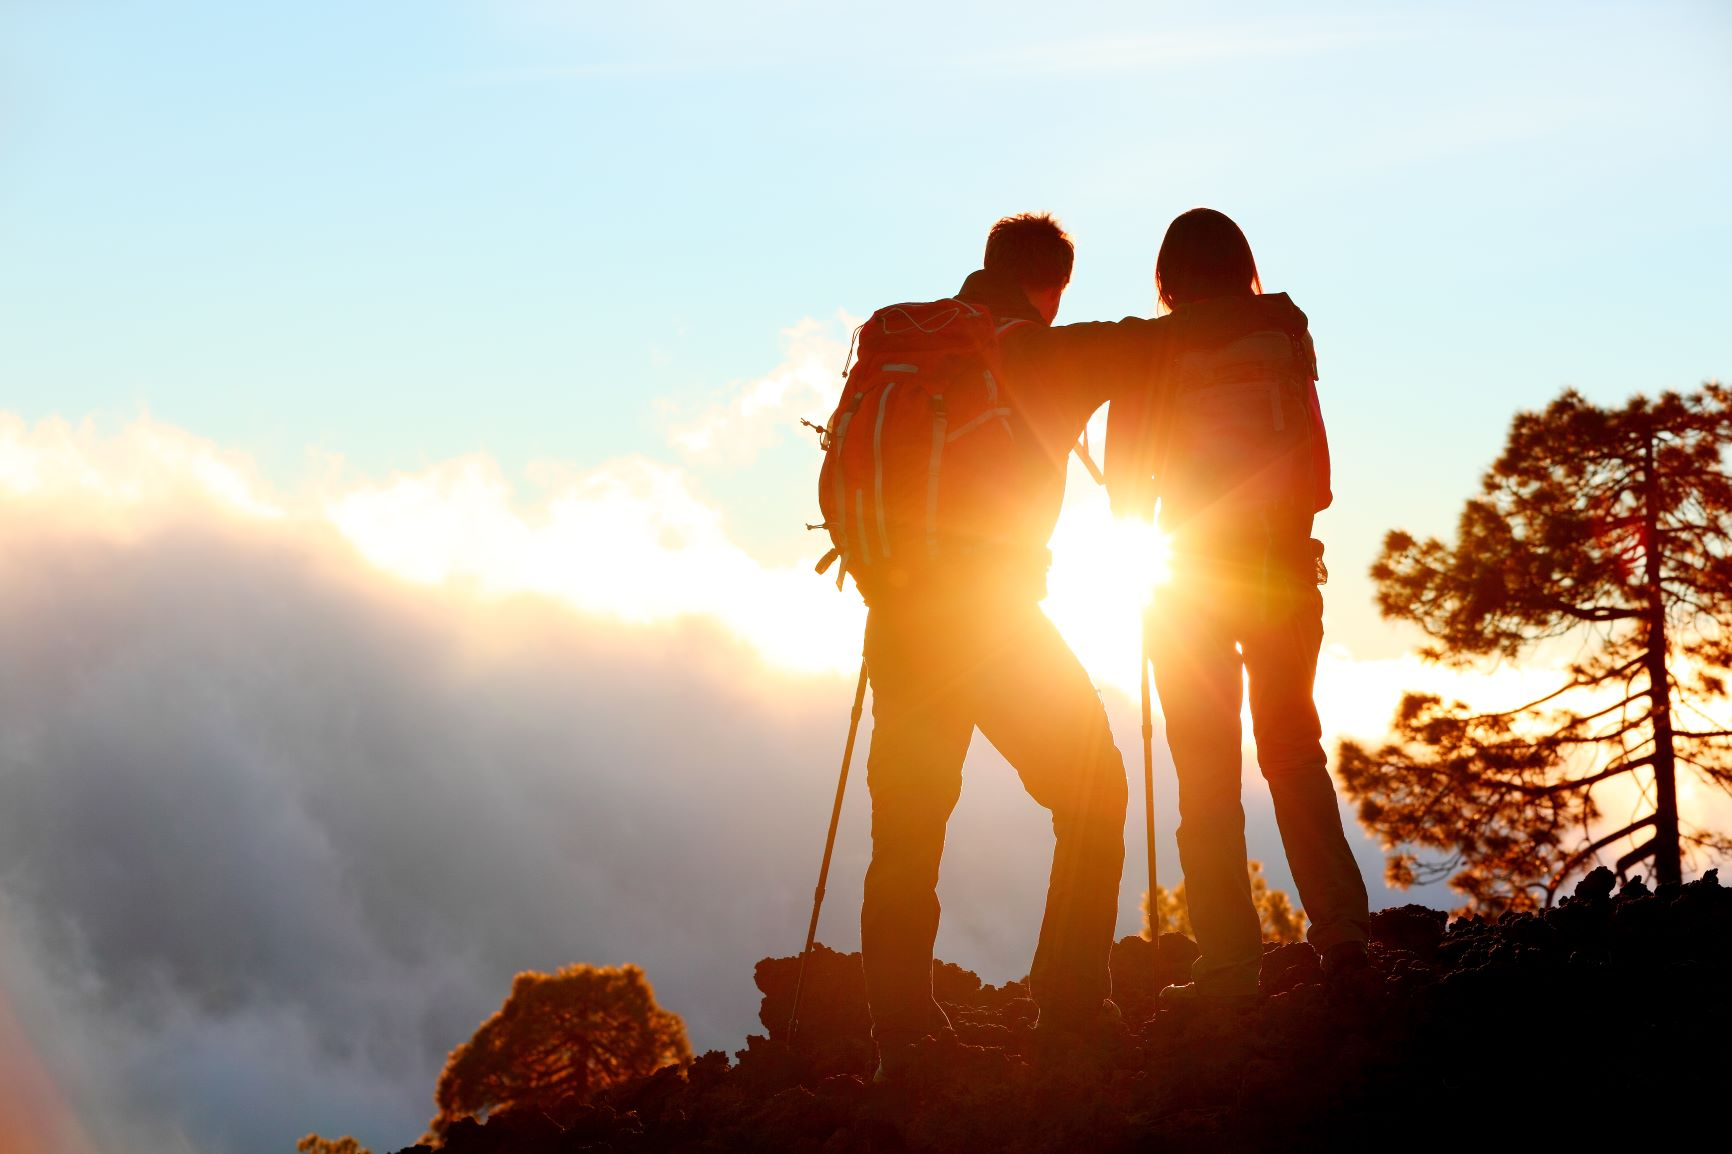 A man and a woman hiking while looking at a sunset.